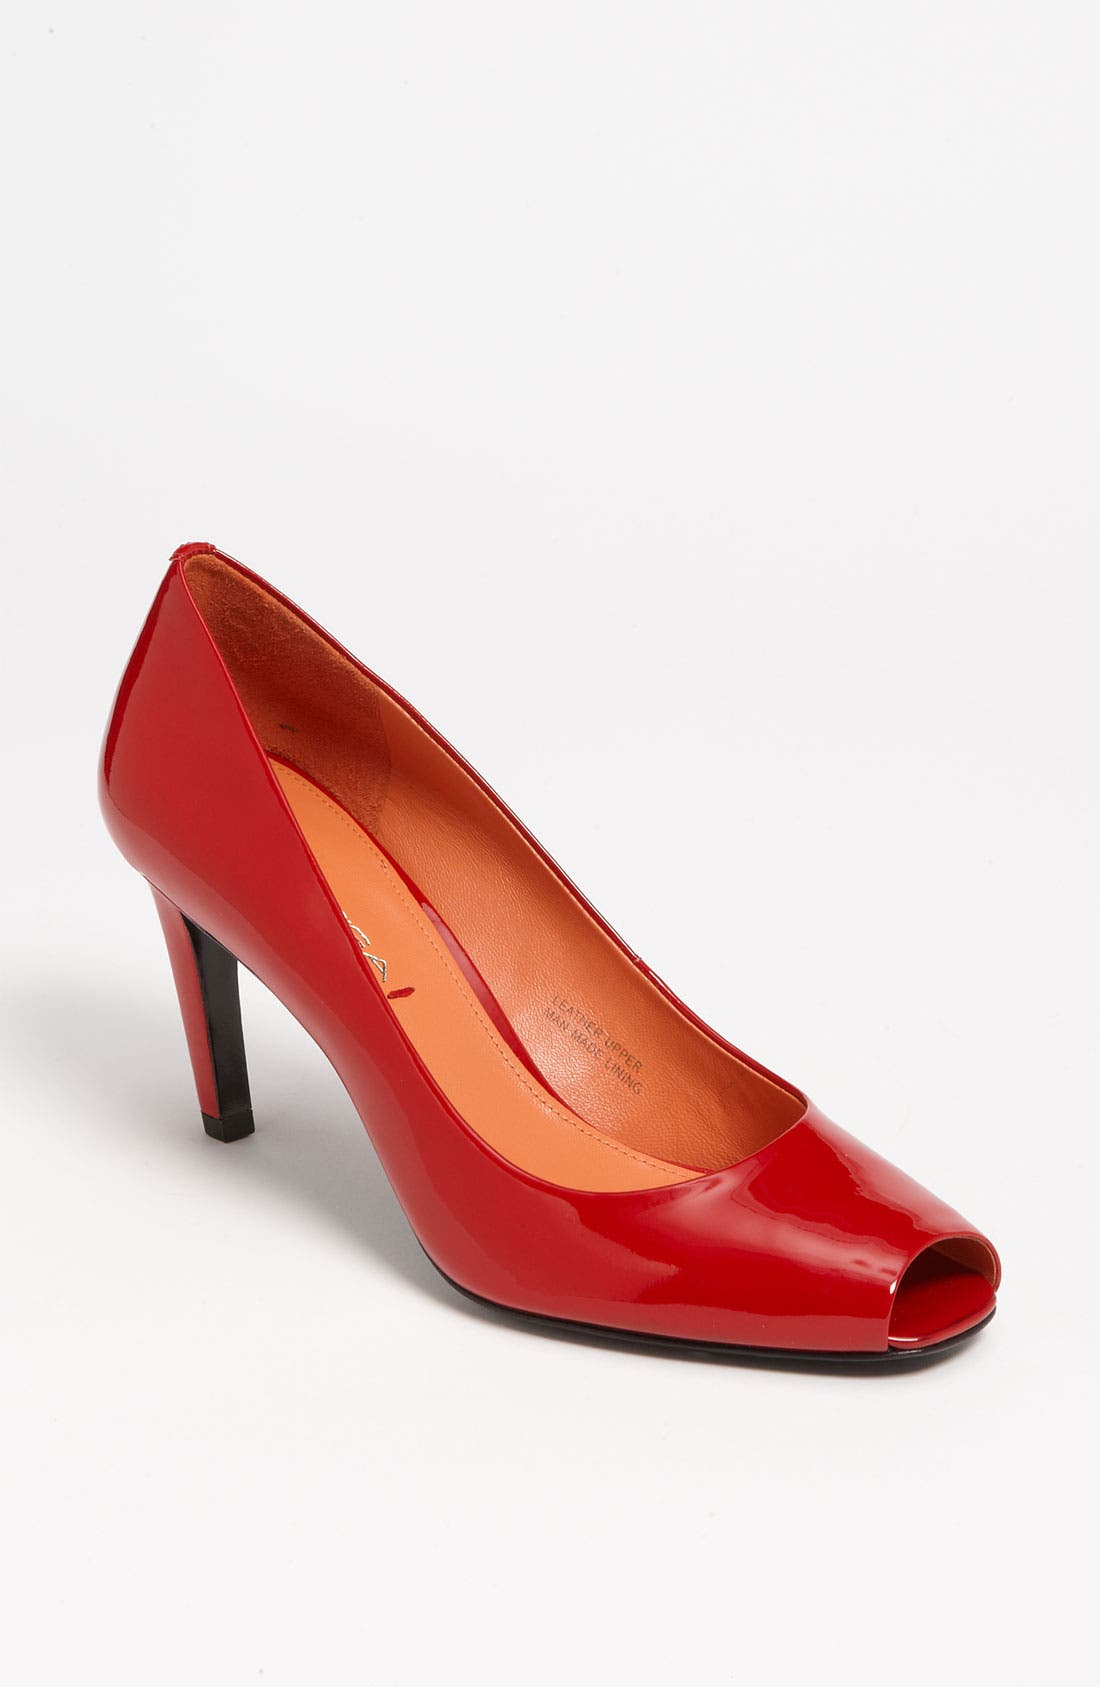 Alternate Image 1 Selected - Via Spiga 'Savannah' Pump (Nordstrom Exclusive)